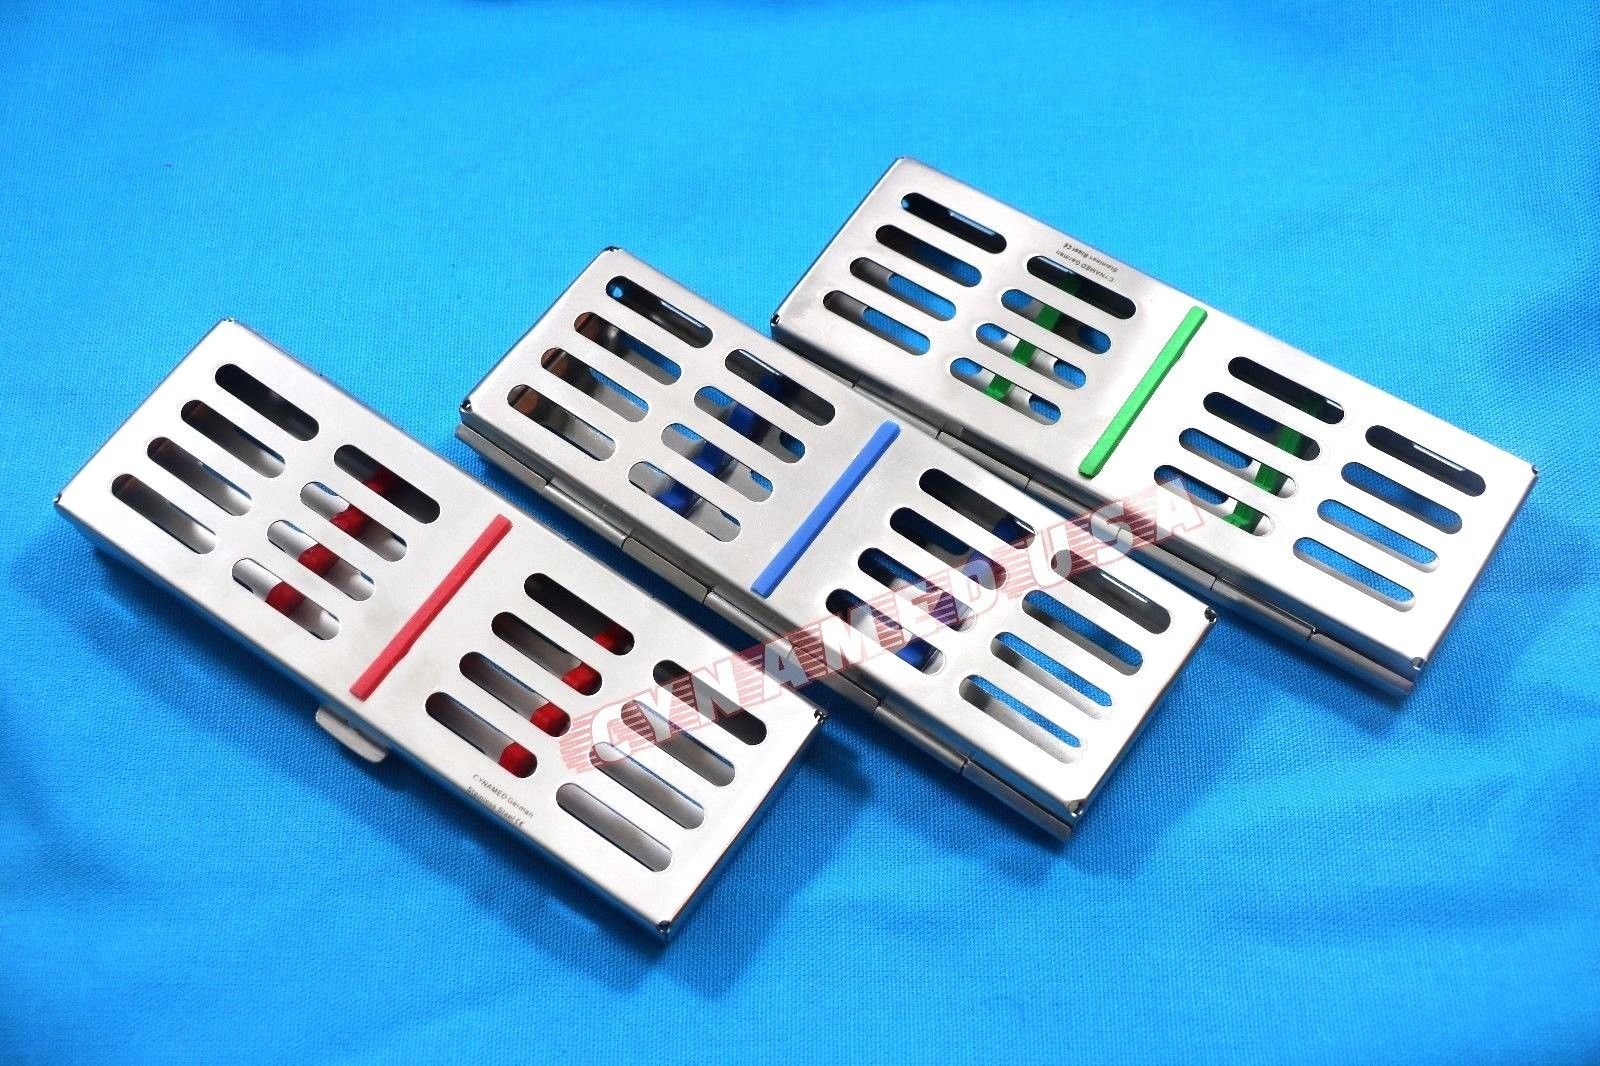 NEW SET OF 3 GERMAN STAINLESS DENTAL AUTOCLAVE STERILIZATION CASSETTE RACK BOX TRAY FOR 5 INSTRUMENT ( SET OF 3 COLORED )